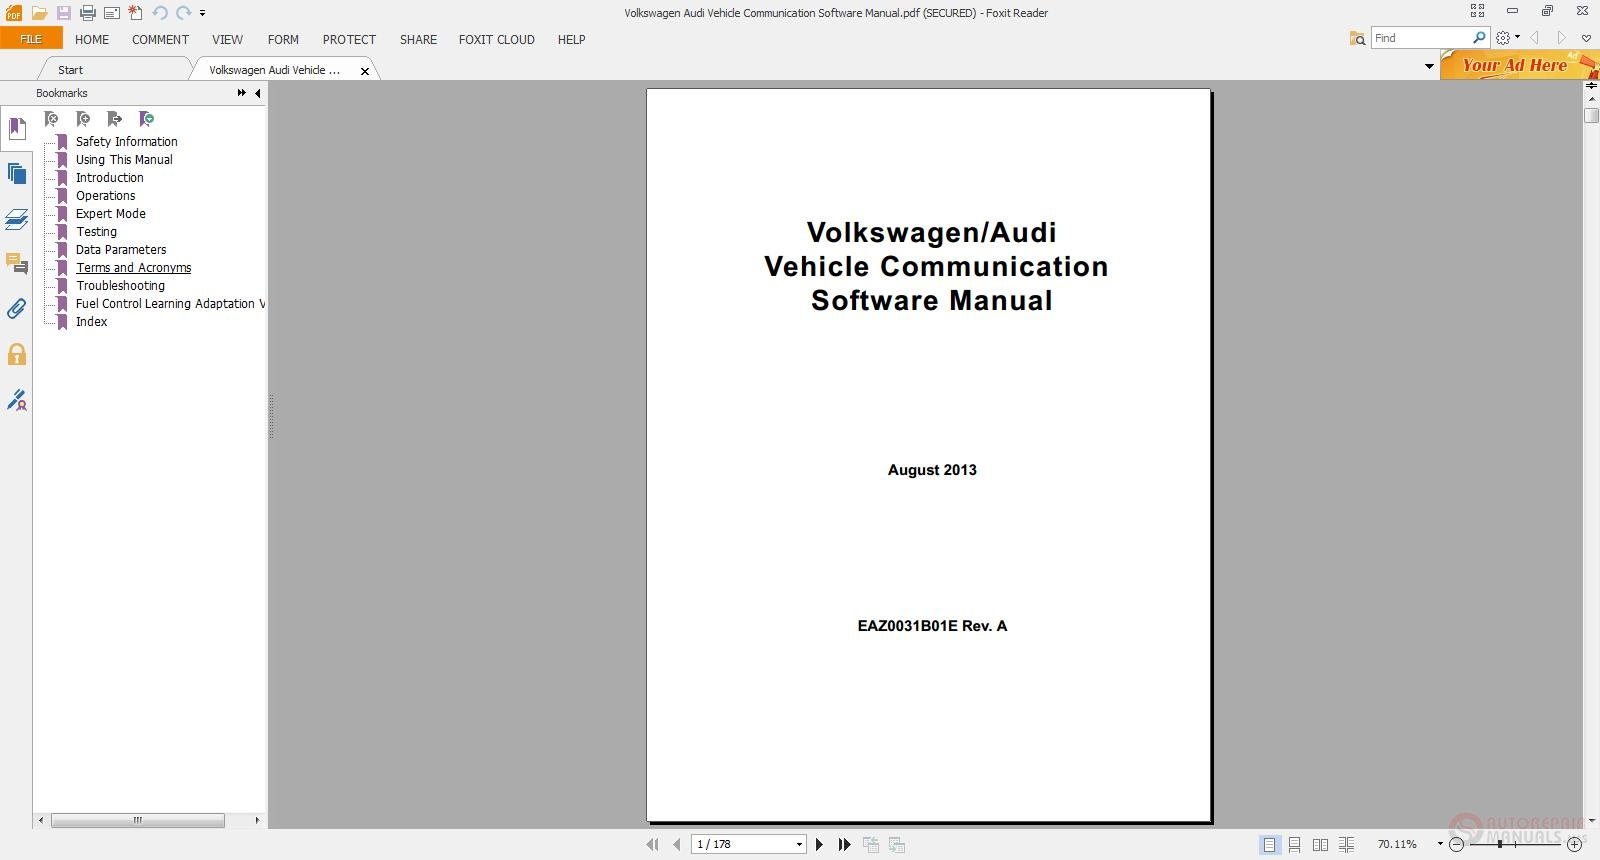 Volkswagen Audi Vehicle Communication Software Manual on 2000 Volvo S80 Repair Manual